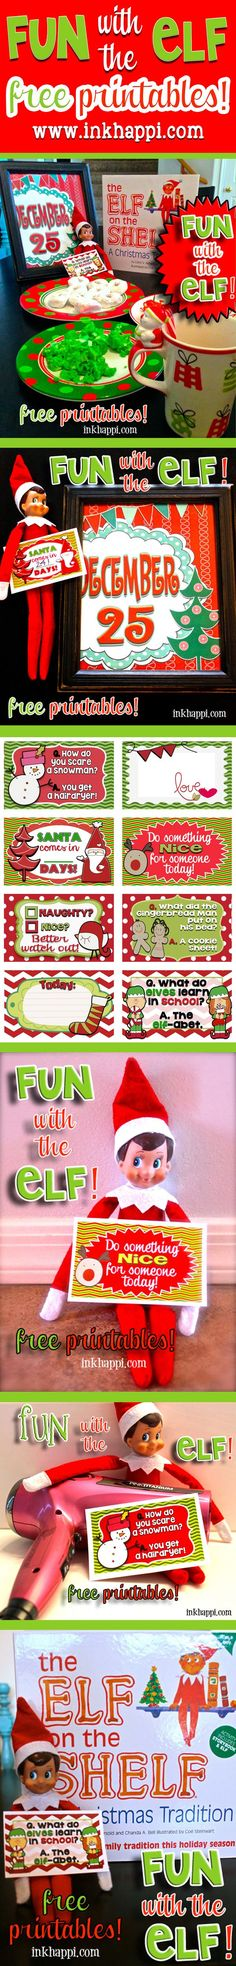 Fun with the Elf. or not Elf. Some great printable cards for the elf or to use as lunchbox notes, tags, whatever you want! Plus some fun ideas! Christmas Activities, Christmas Traditions, Xmas Messages, Christmas Holidays, Christmas Crafts, Christmas Recipes, Elf On The Self, Buddy The Elf, Printable Cards